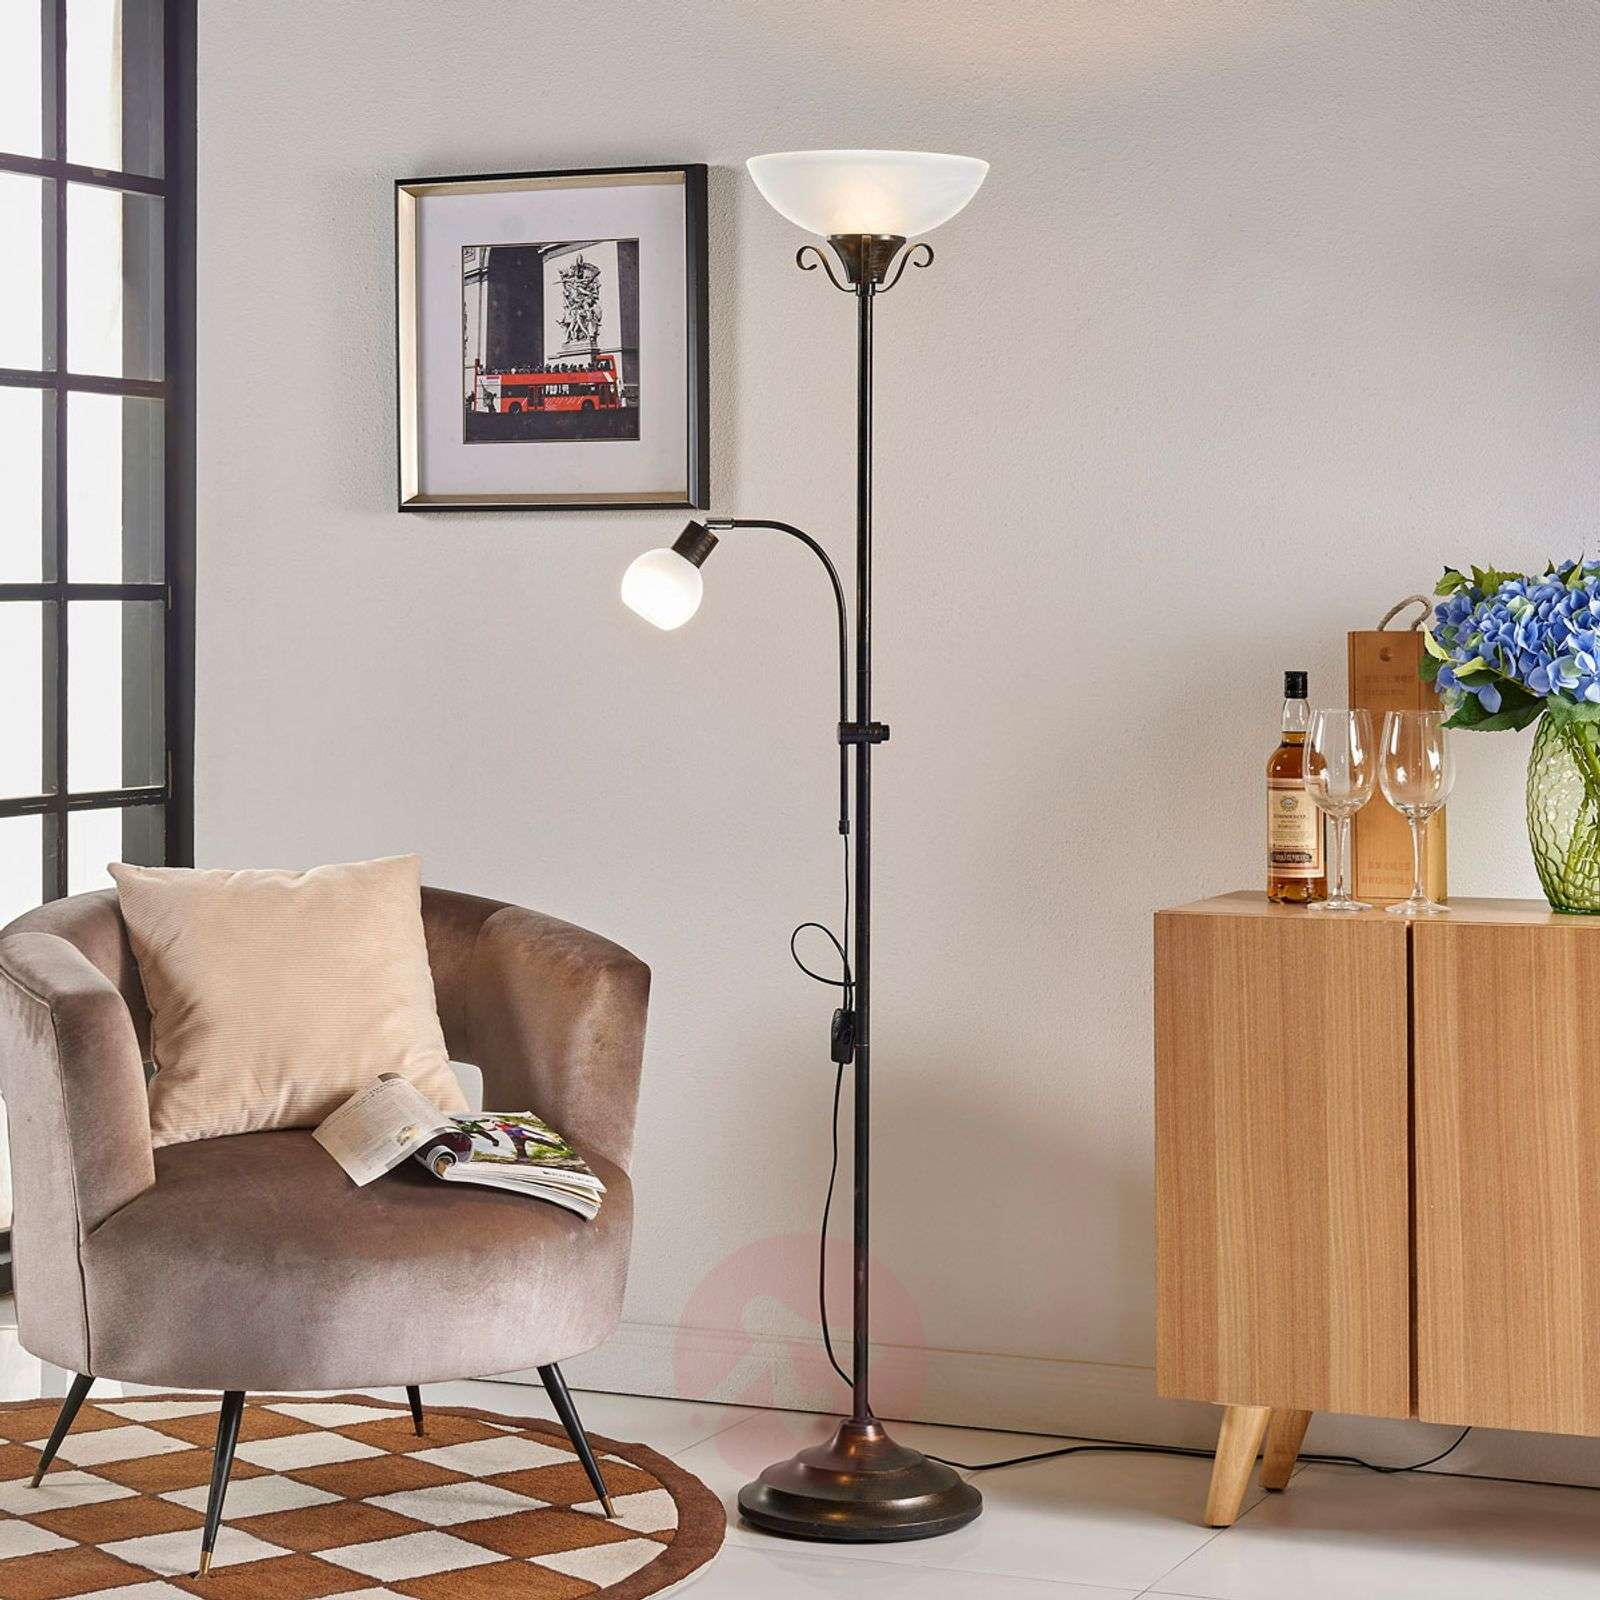 Rustic uplighter Hannes with reading light-9621006-04